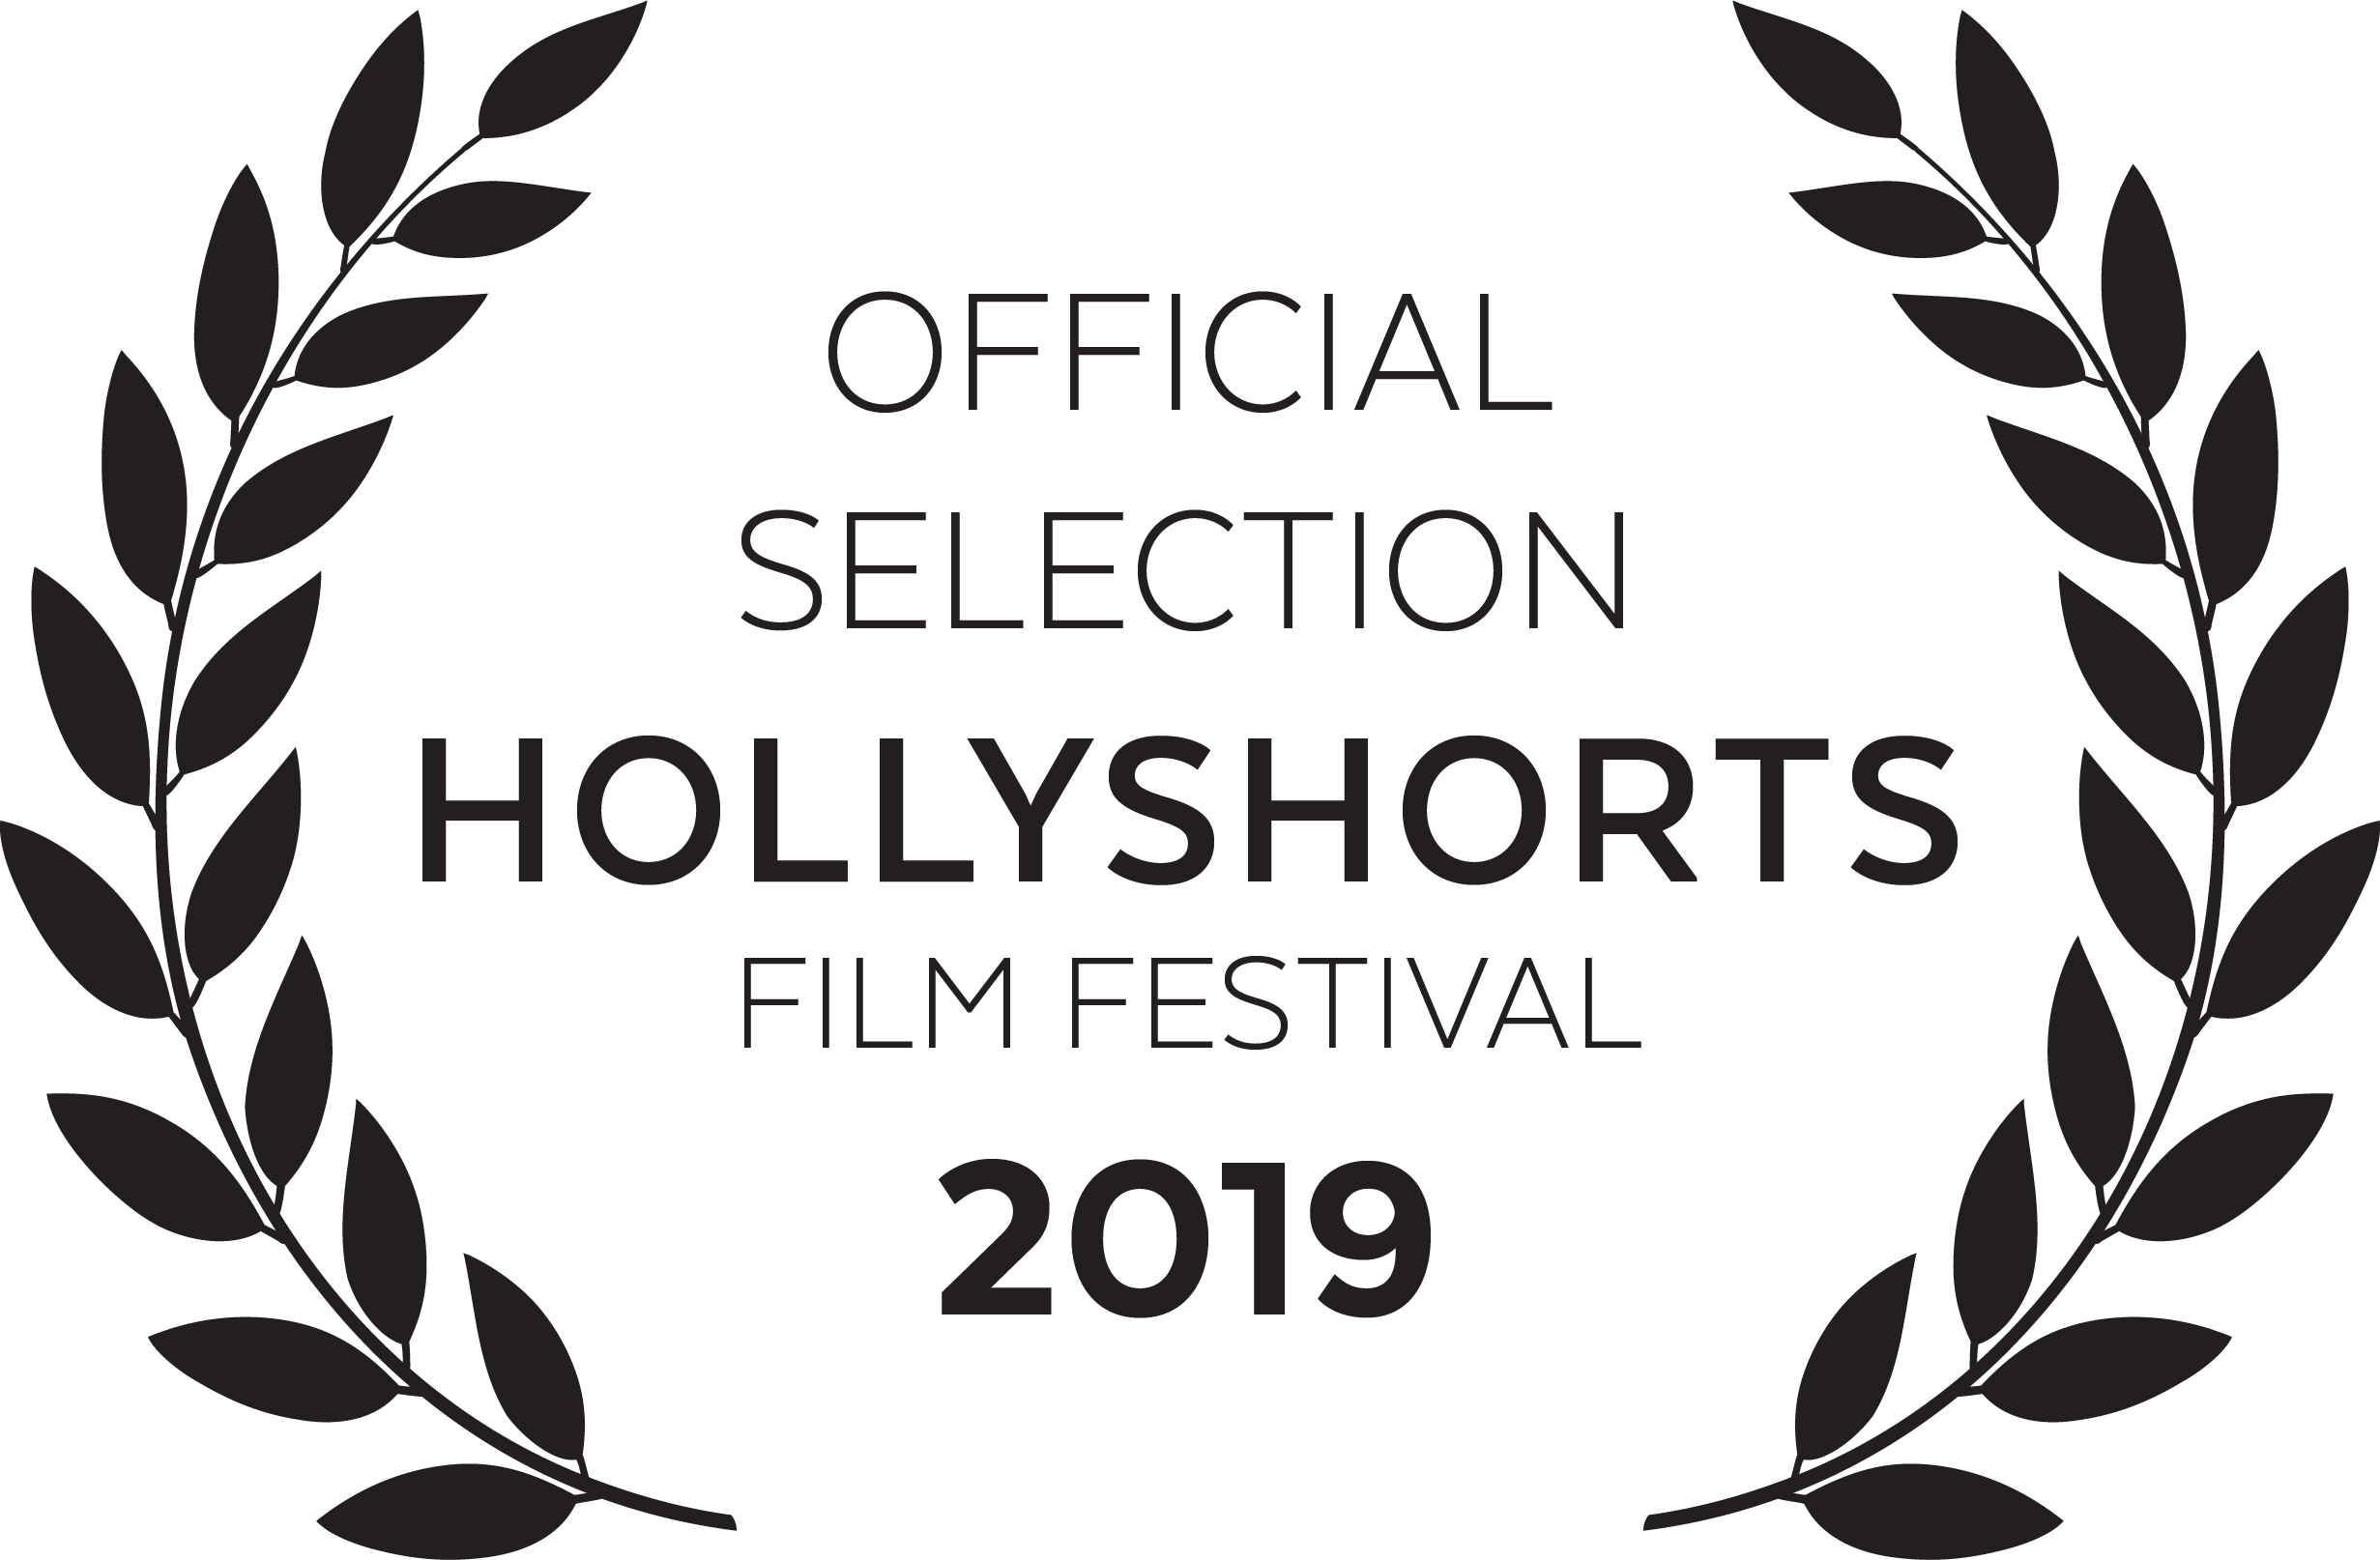 8.15.2019 | 7:30p - SCI-FI / FANTASY SHORTSTCL CHINESE 6 THEATRE, #46925 Hollywood Blvd, Hollywood, CA 90028Tickets here.